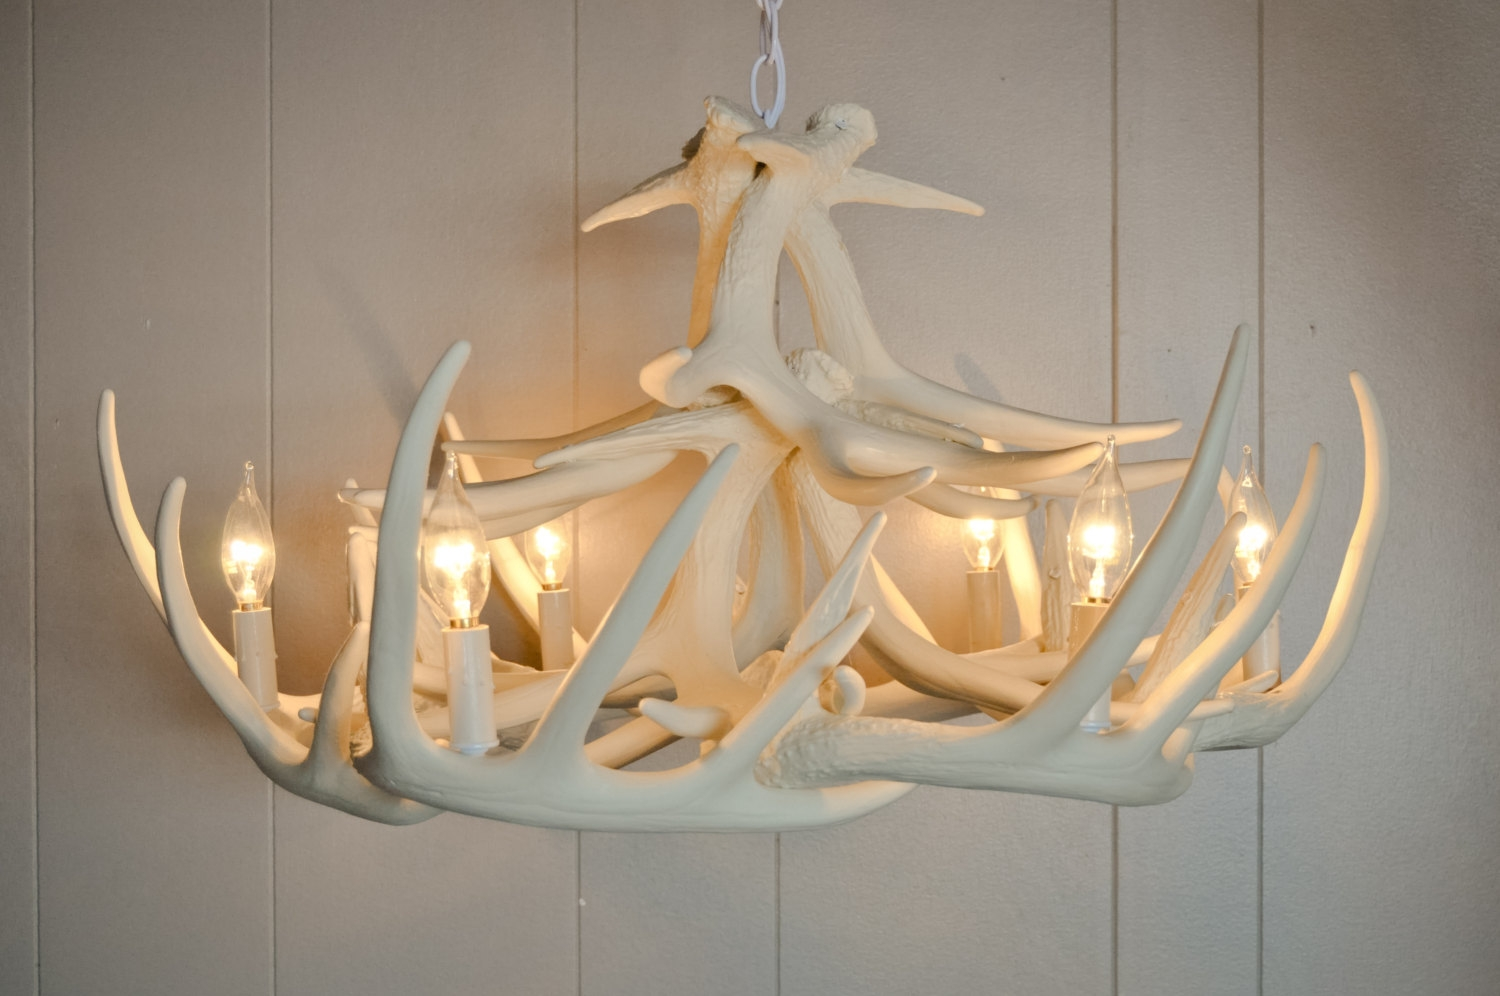 Lamp Deer Horn Chandelier With Authentic Look For Your Lighting Intended For Modern Antler Chandelier (#4 of 12)